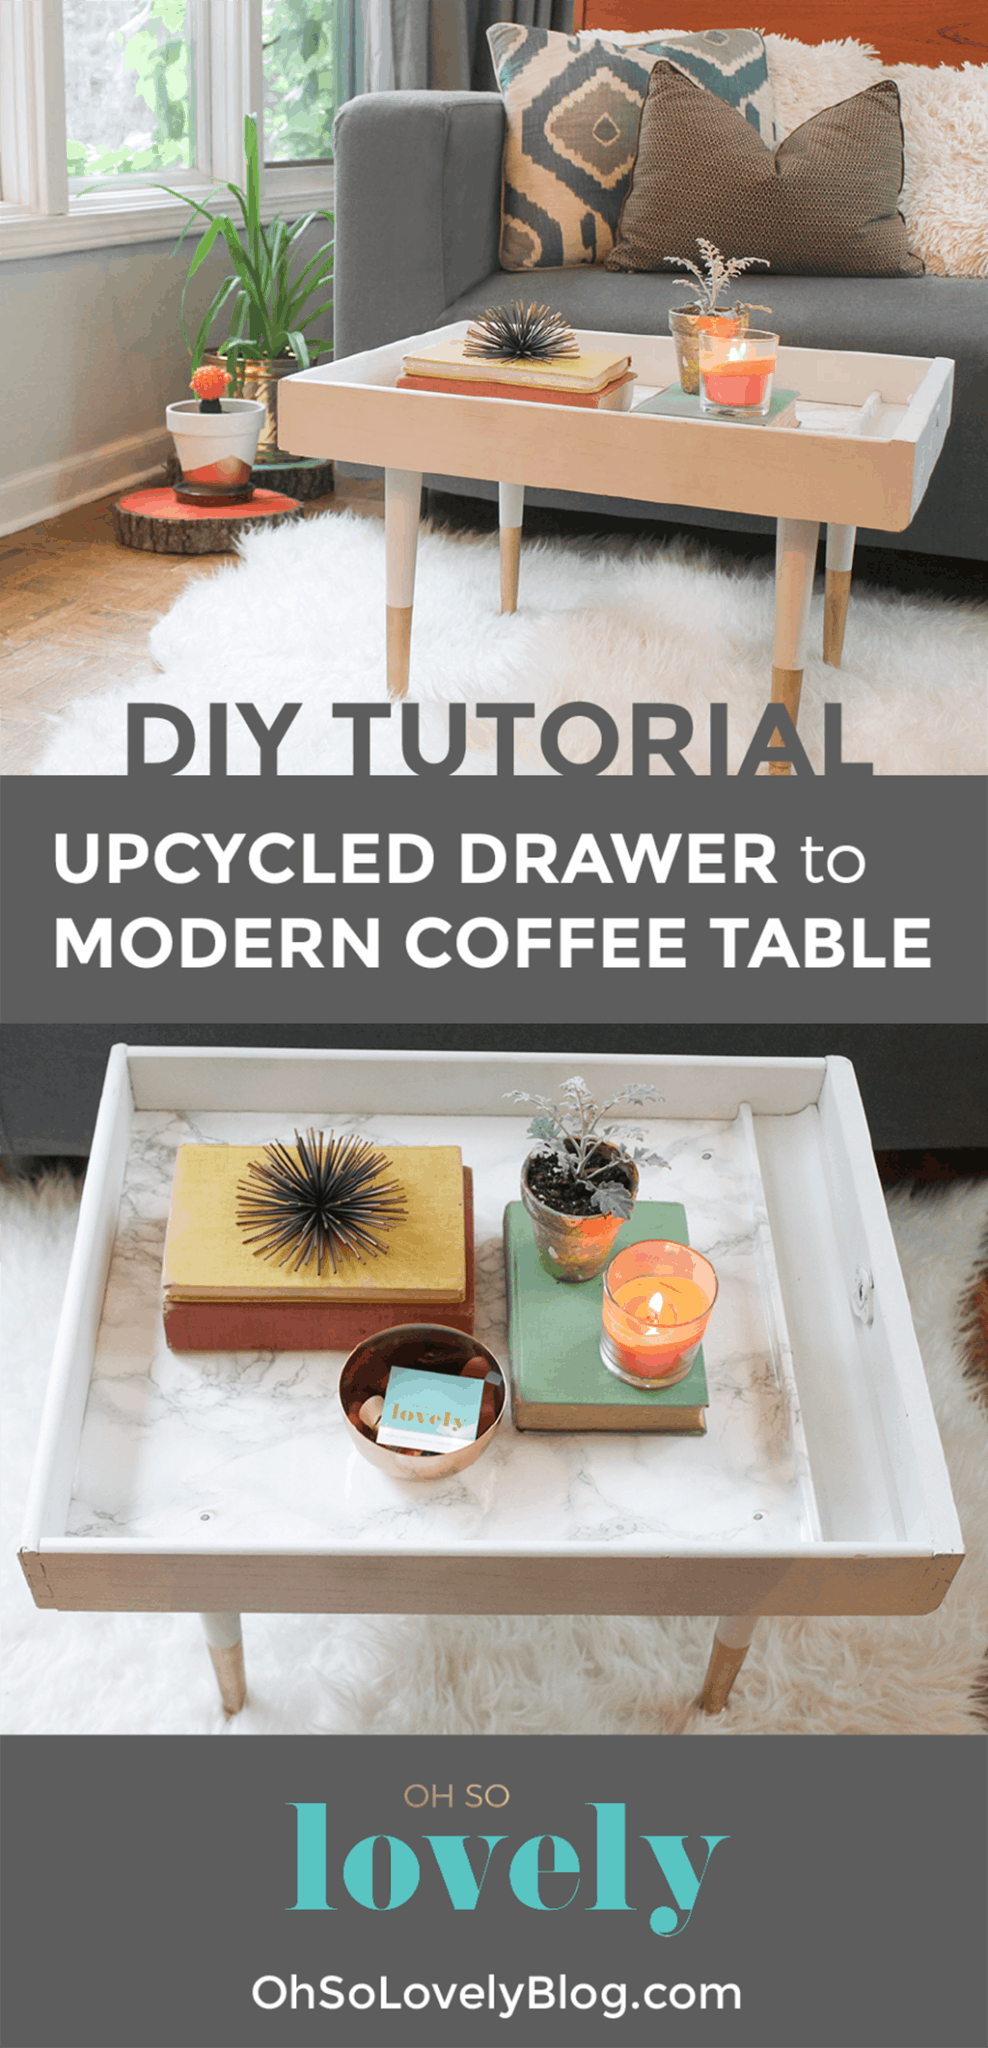 Affordable Diy Upcycled Drawer To Modern Coffee Table Tutorial